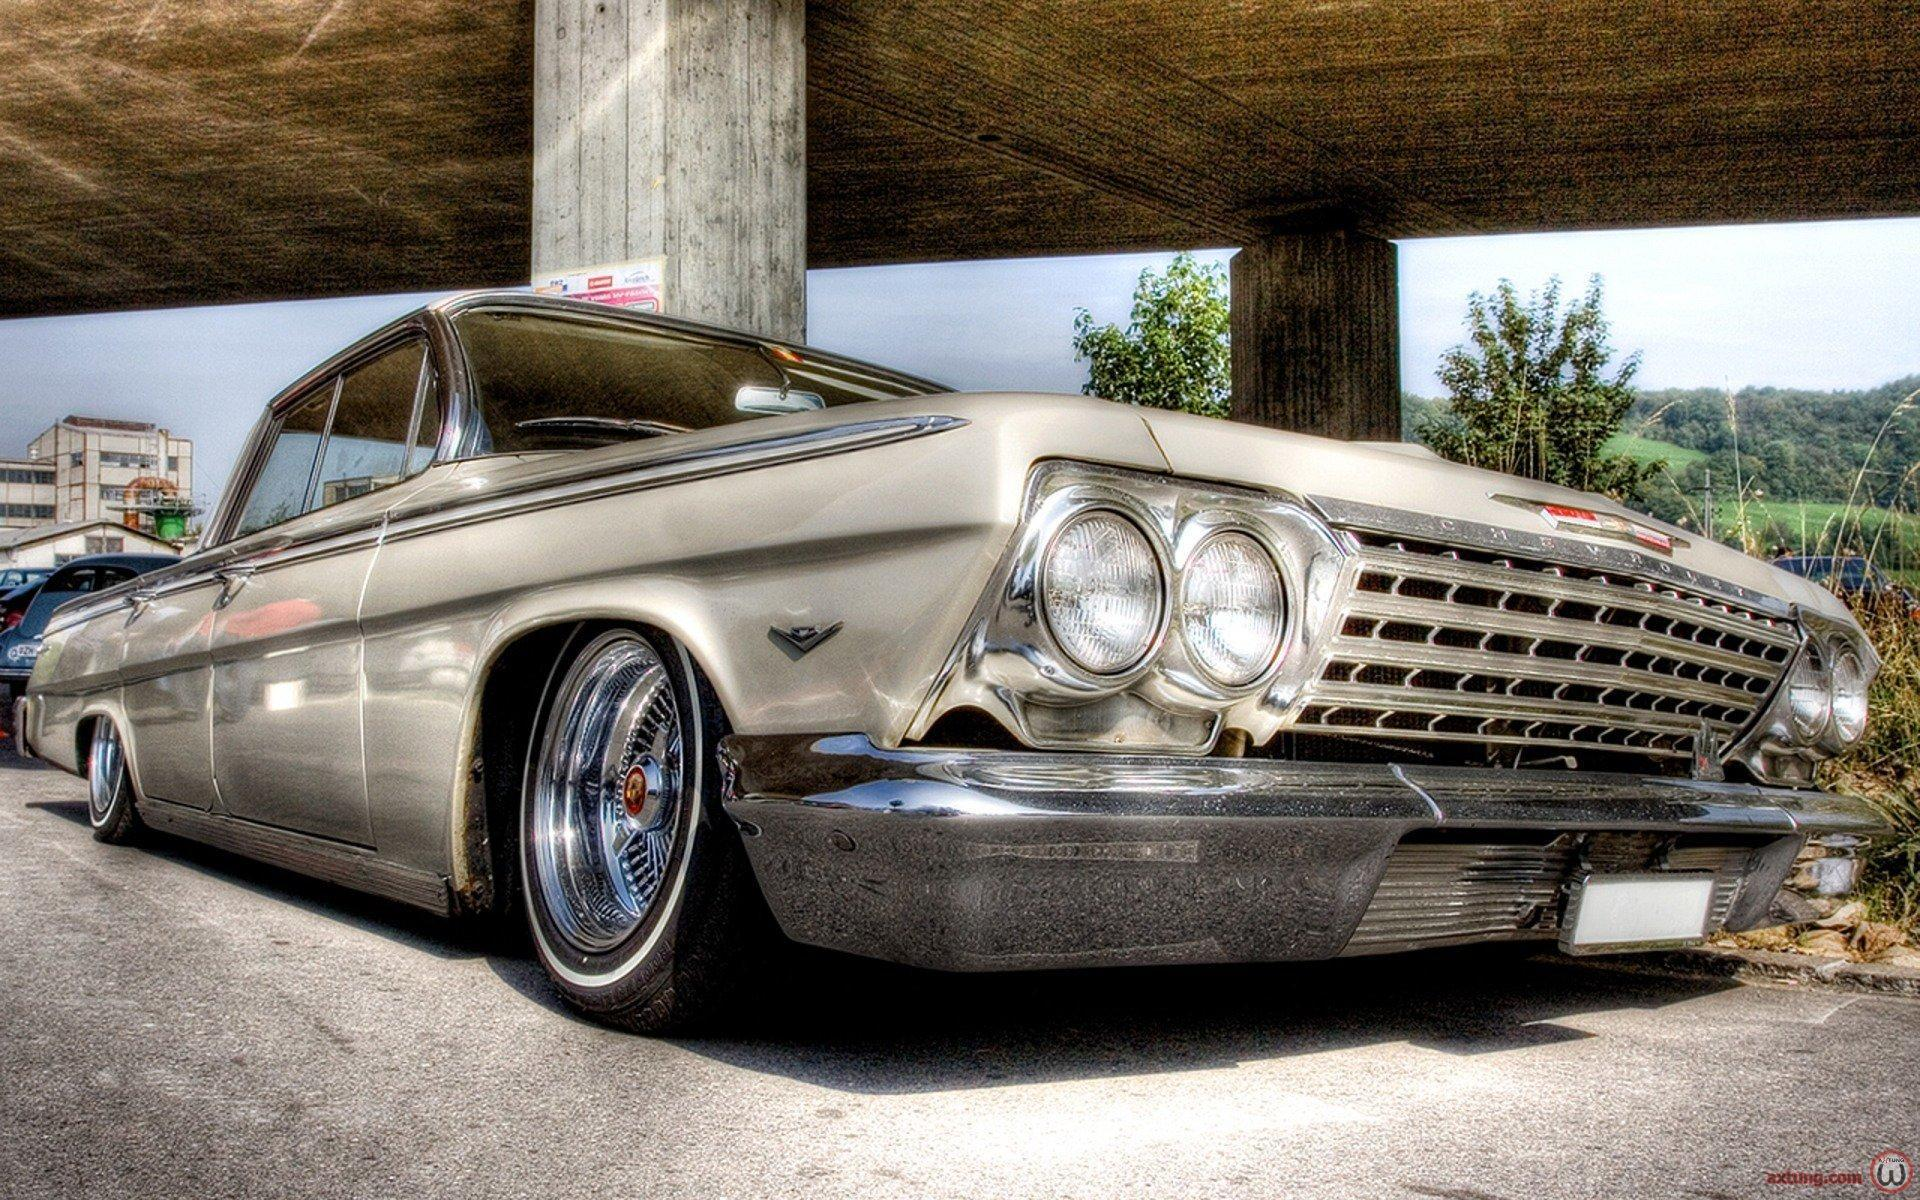 1967 Chevrolet Impala Wallpapers Wallpaper Cave